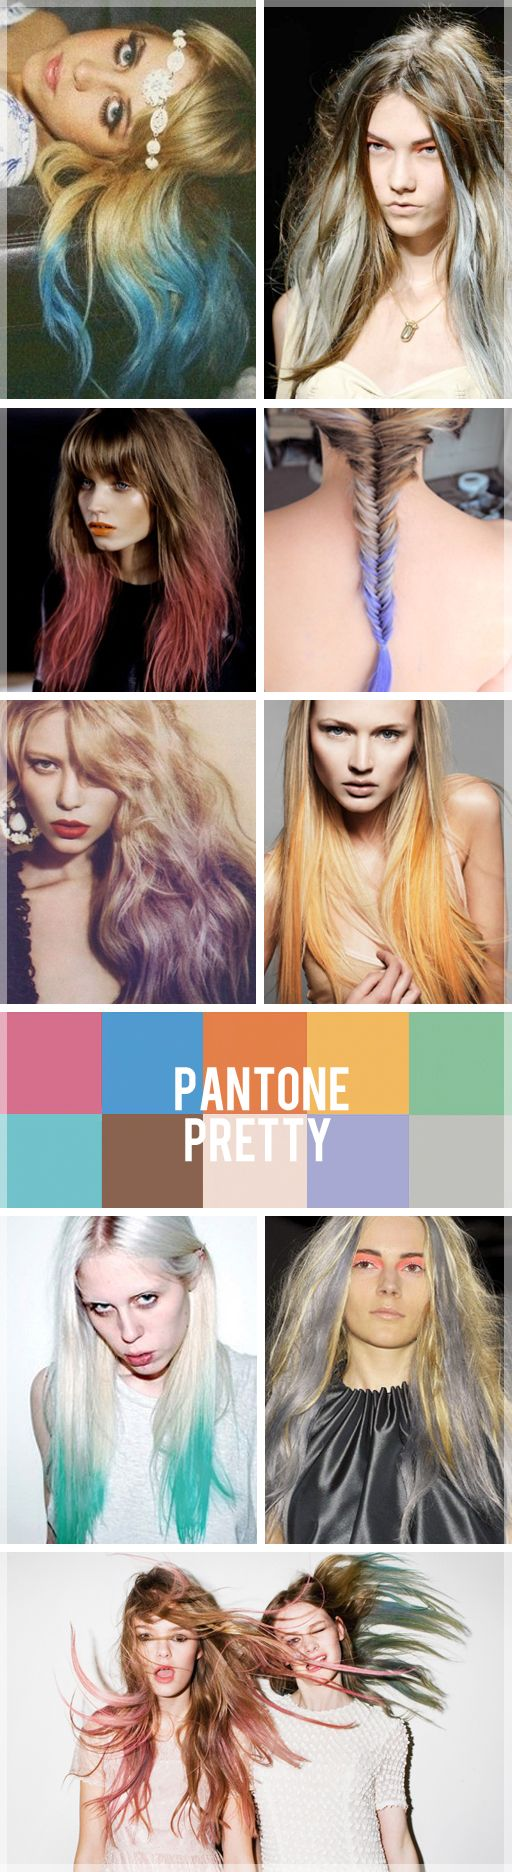 Tie dye for your hair: Dyed Hair, Hair Colors, Dips Dyed, Dips Dyes, Pastel Colors, Fishtail Braids, Hair Dye, Pastel Hair, Colors Hair